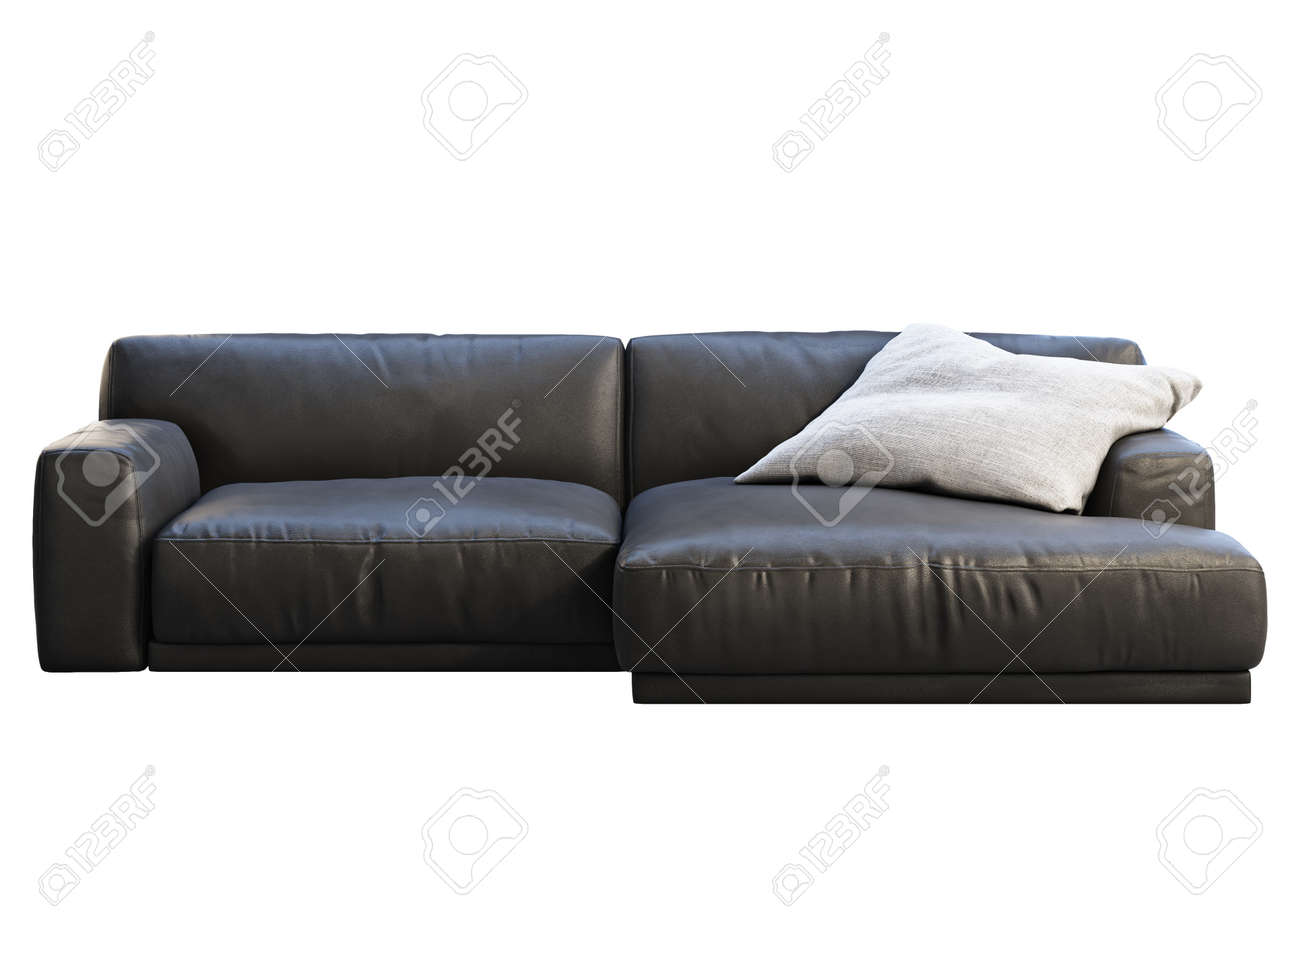 Modern Chaise Lounge Sofa Black Leather Sofa With Gray Fabric Stock Photo Picture And Royalty Free Image Image 145879373